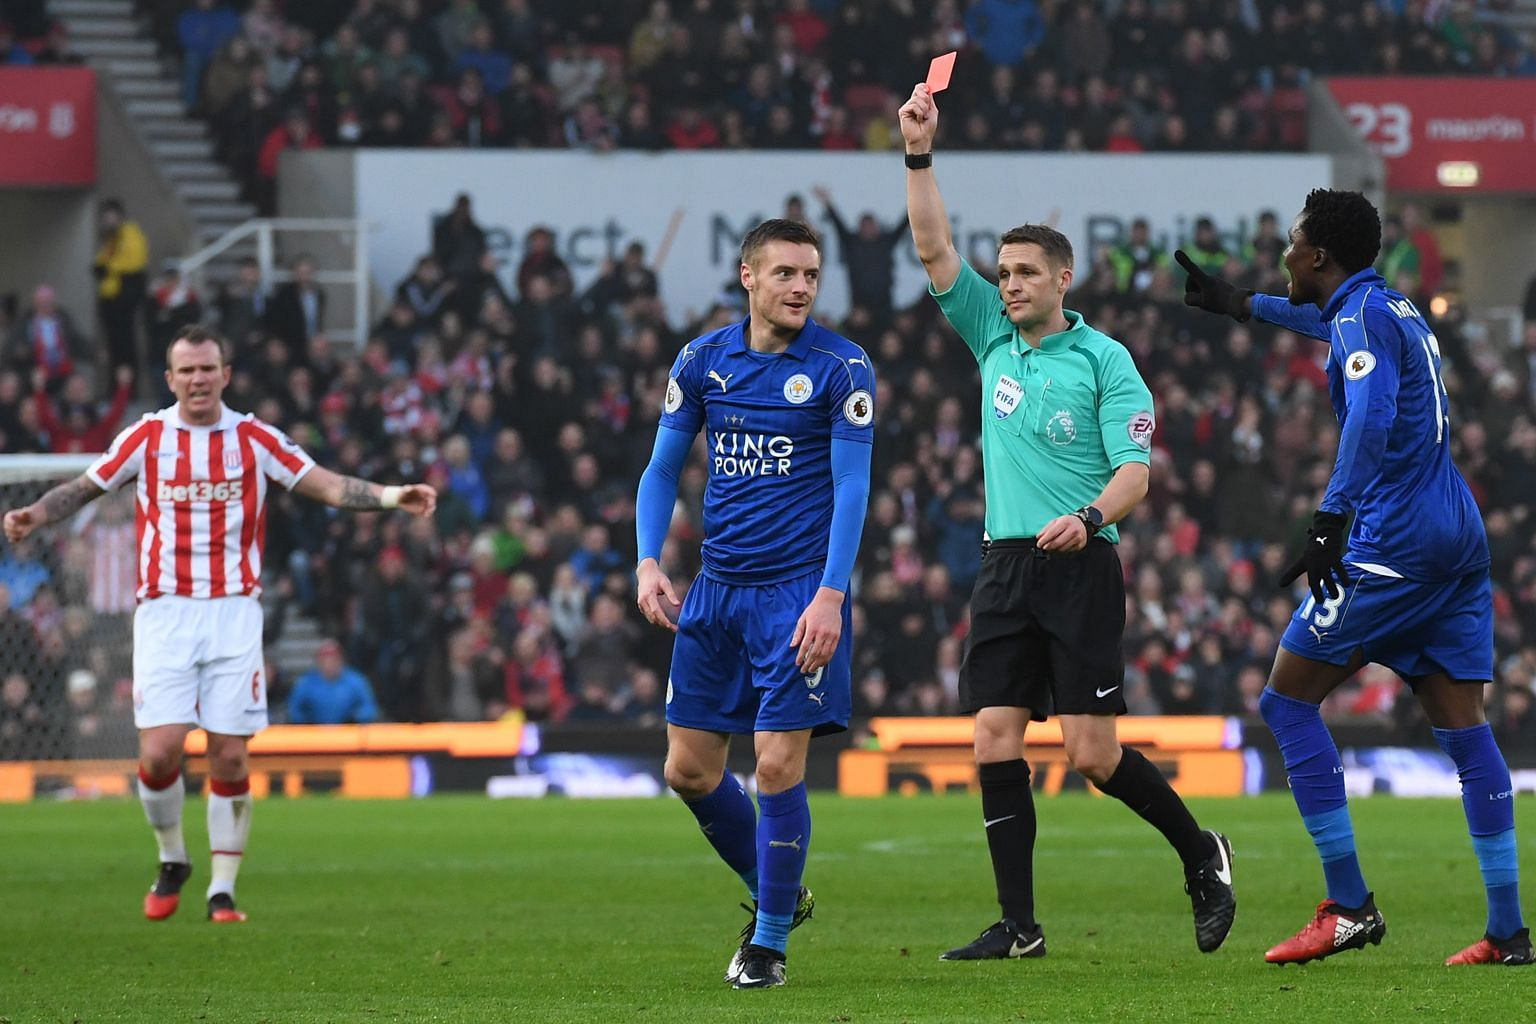 Jamie Vardy (left) being sent off by referee Craig Pawson for a two-footed lunge at Stoke City's Mame Biram Diouf.